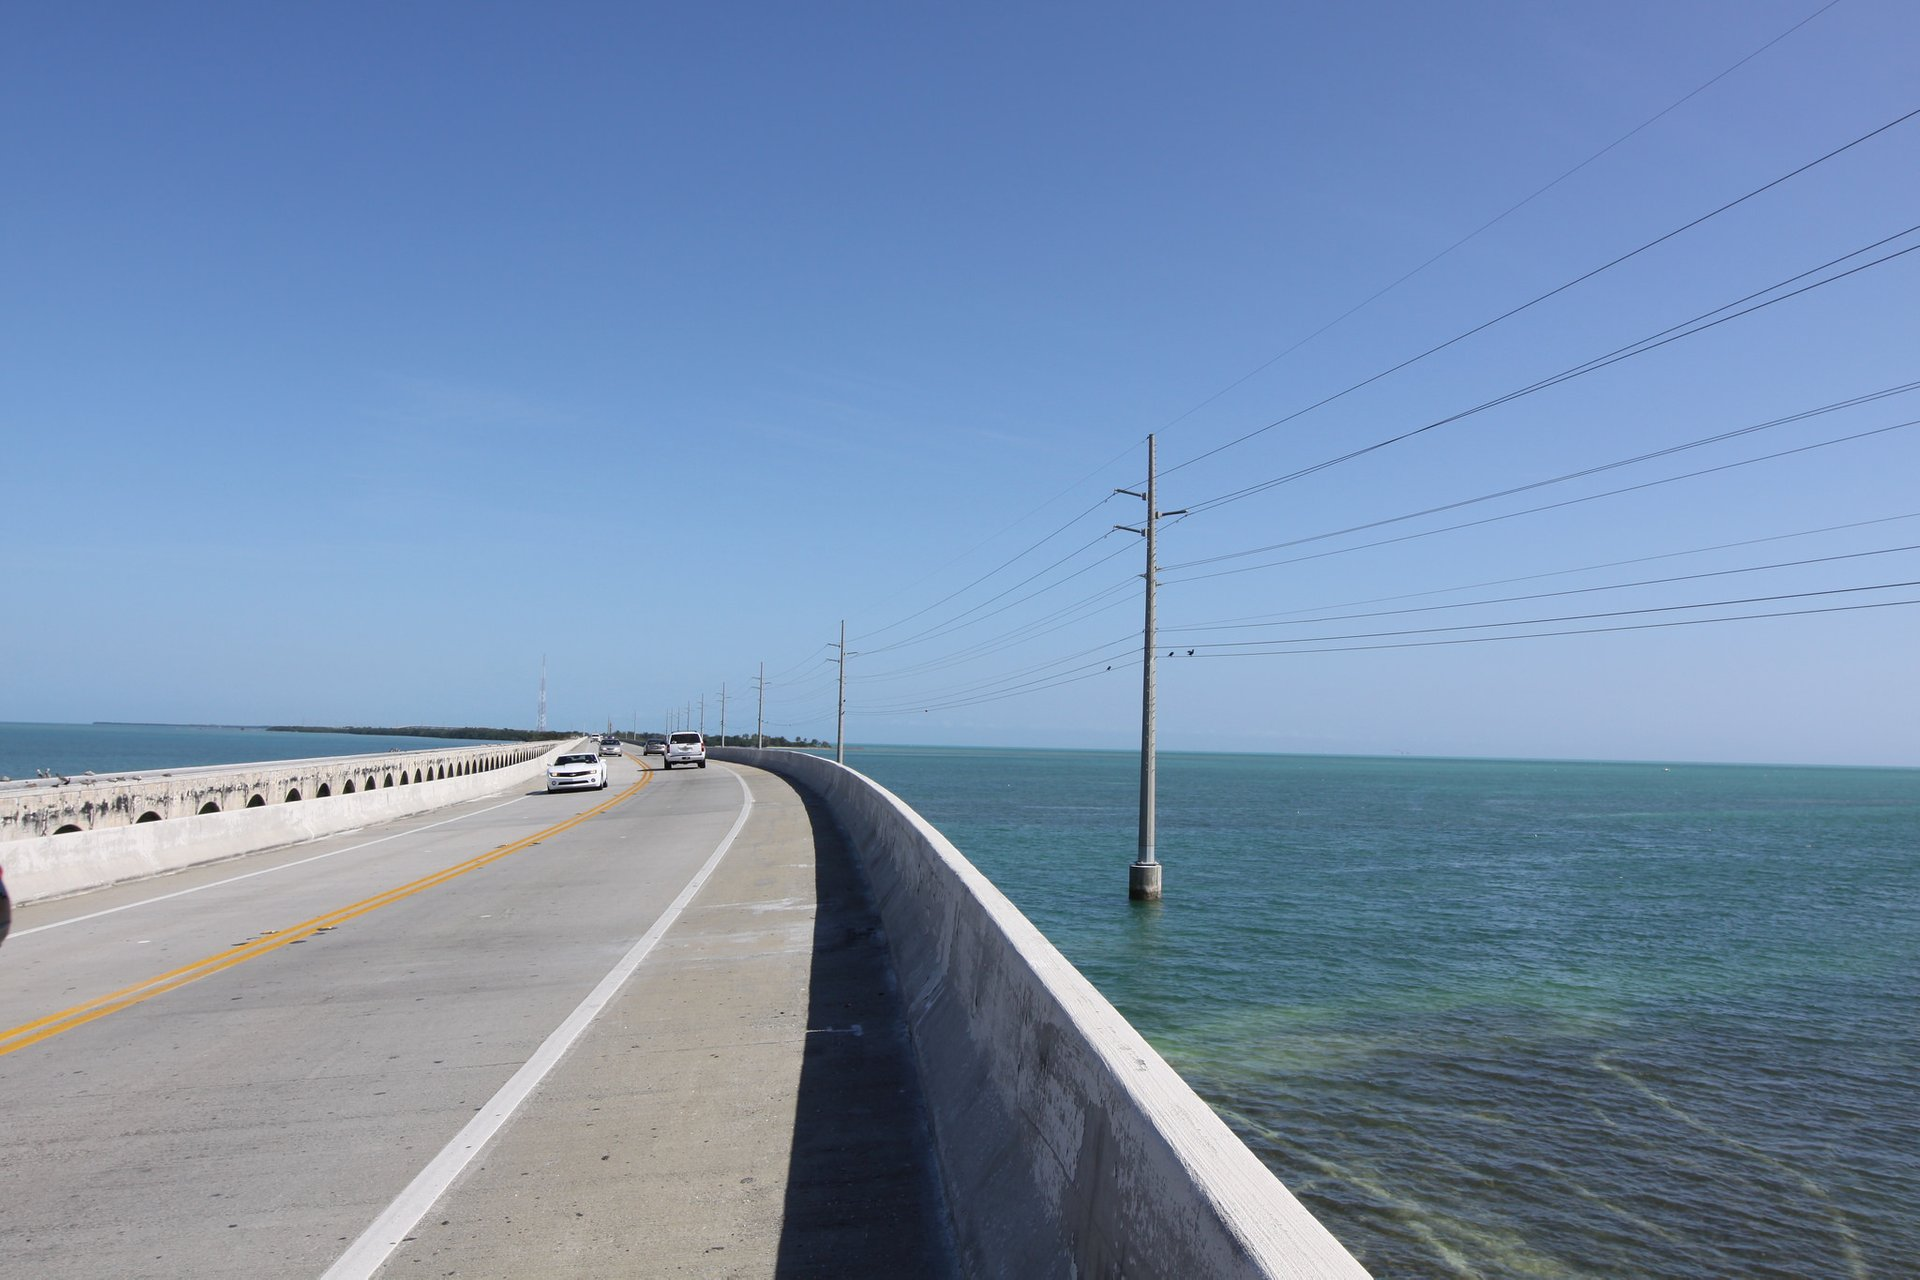 Overseas Highway in Key West & Florida Keys - Best Season 2019